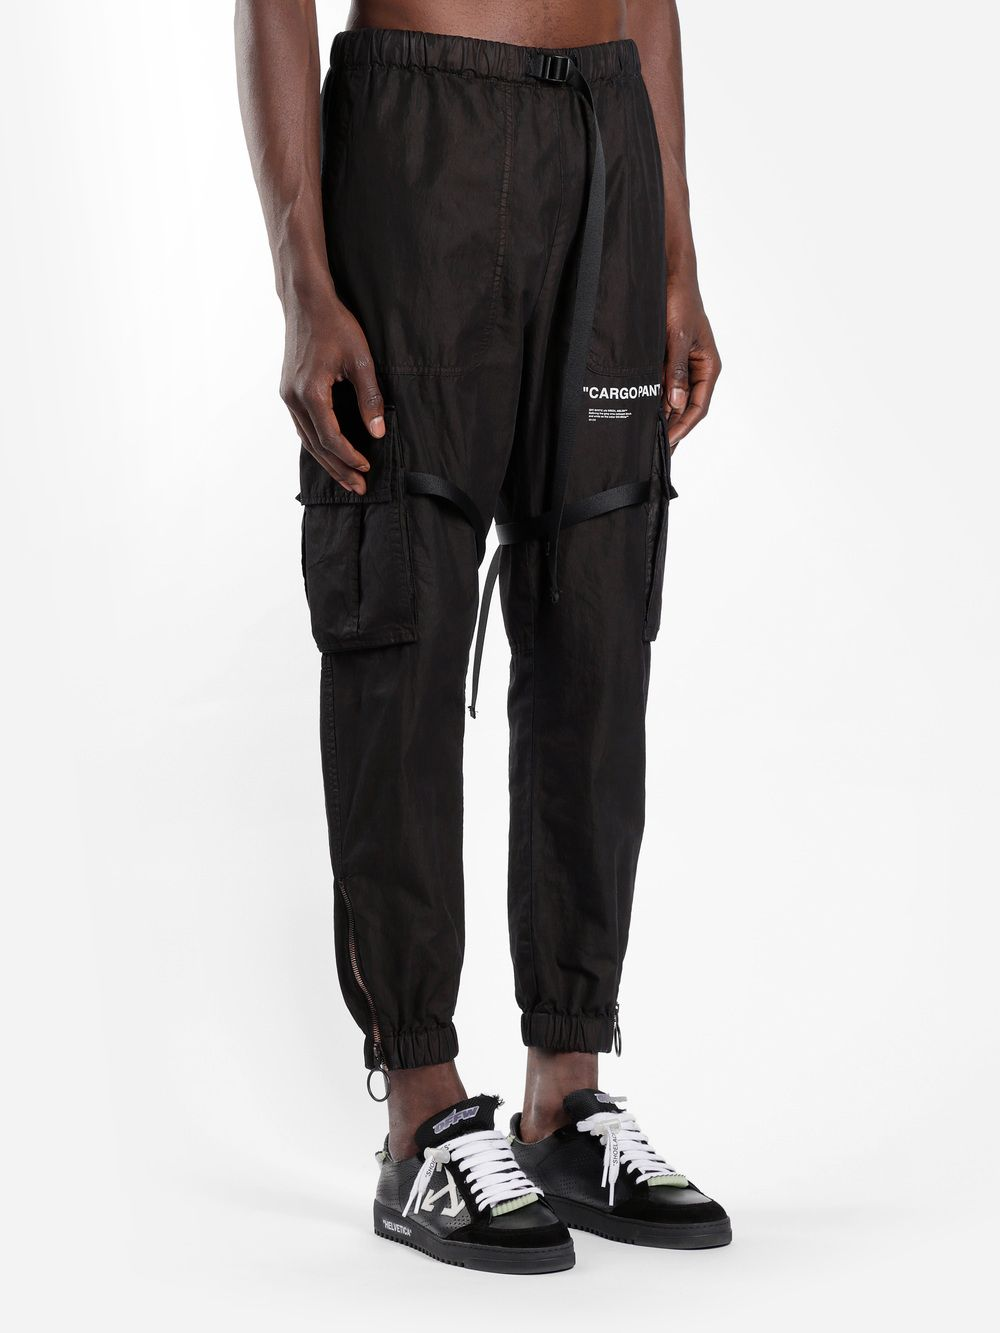 99a8e875b710 Off-White c o Virgil Abloh Trousers OMCF002E18A210101001 in 2019 ...